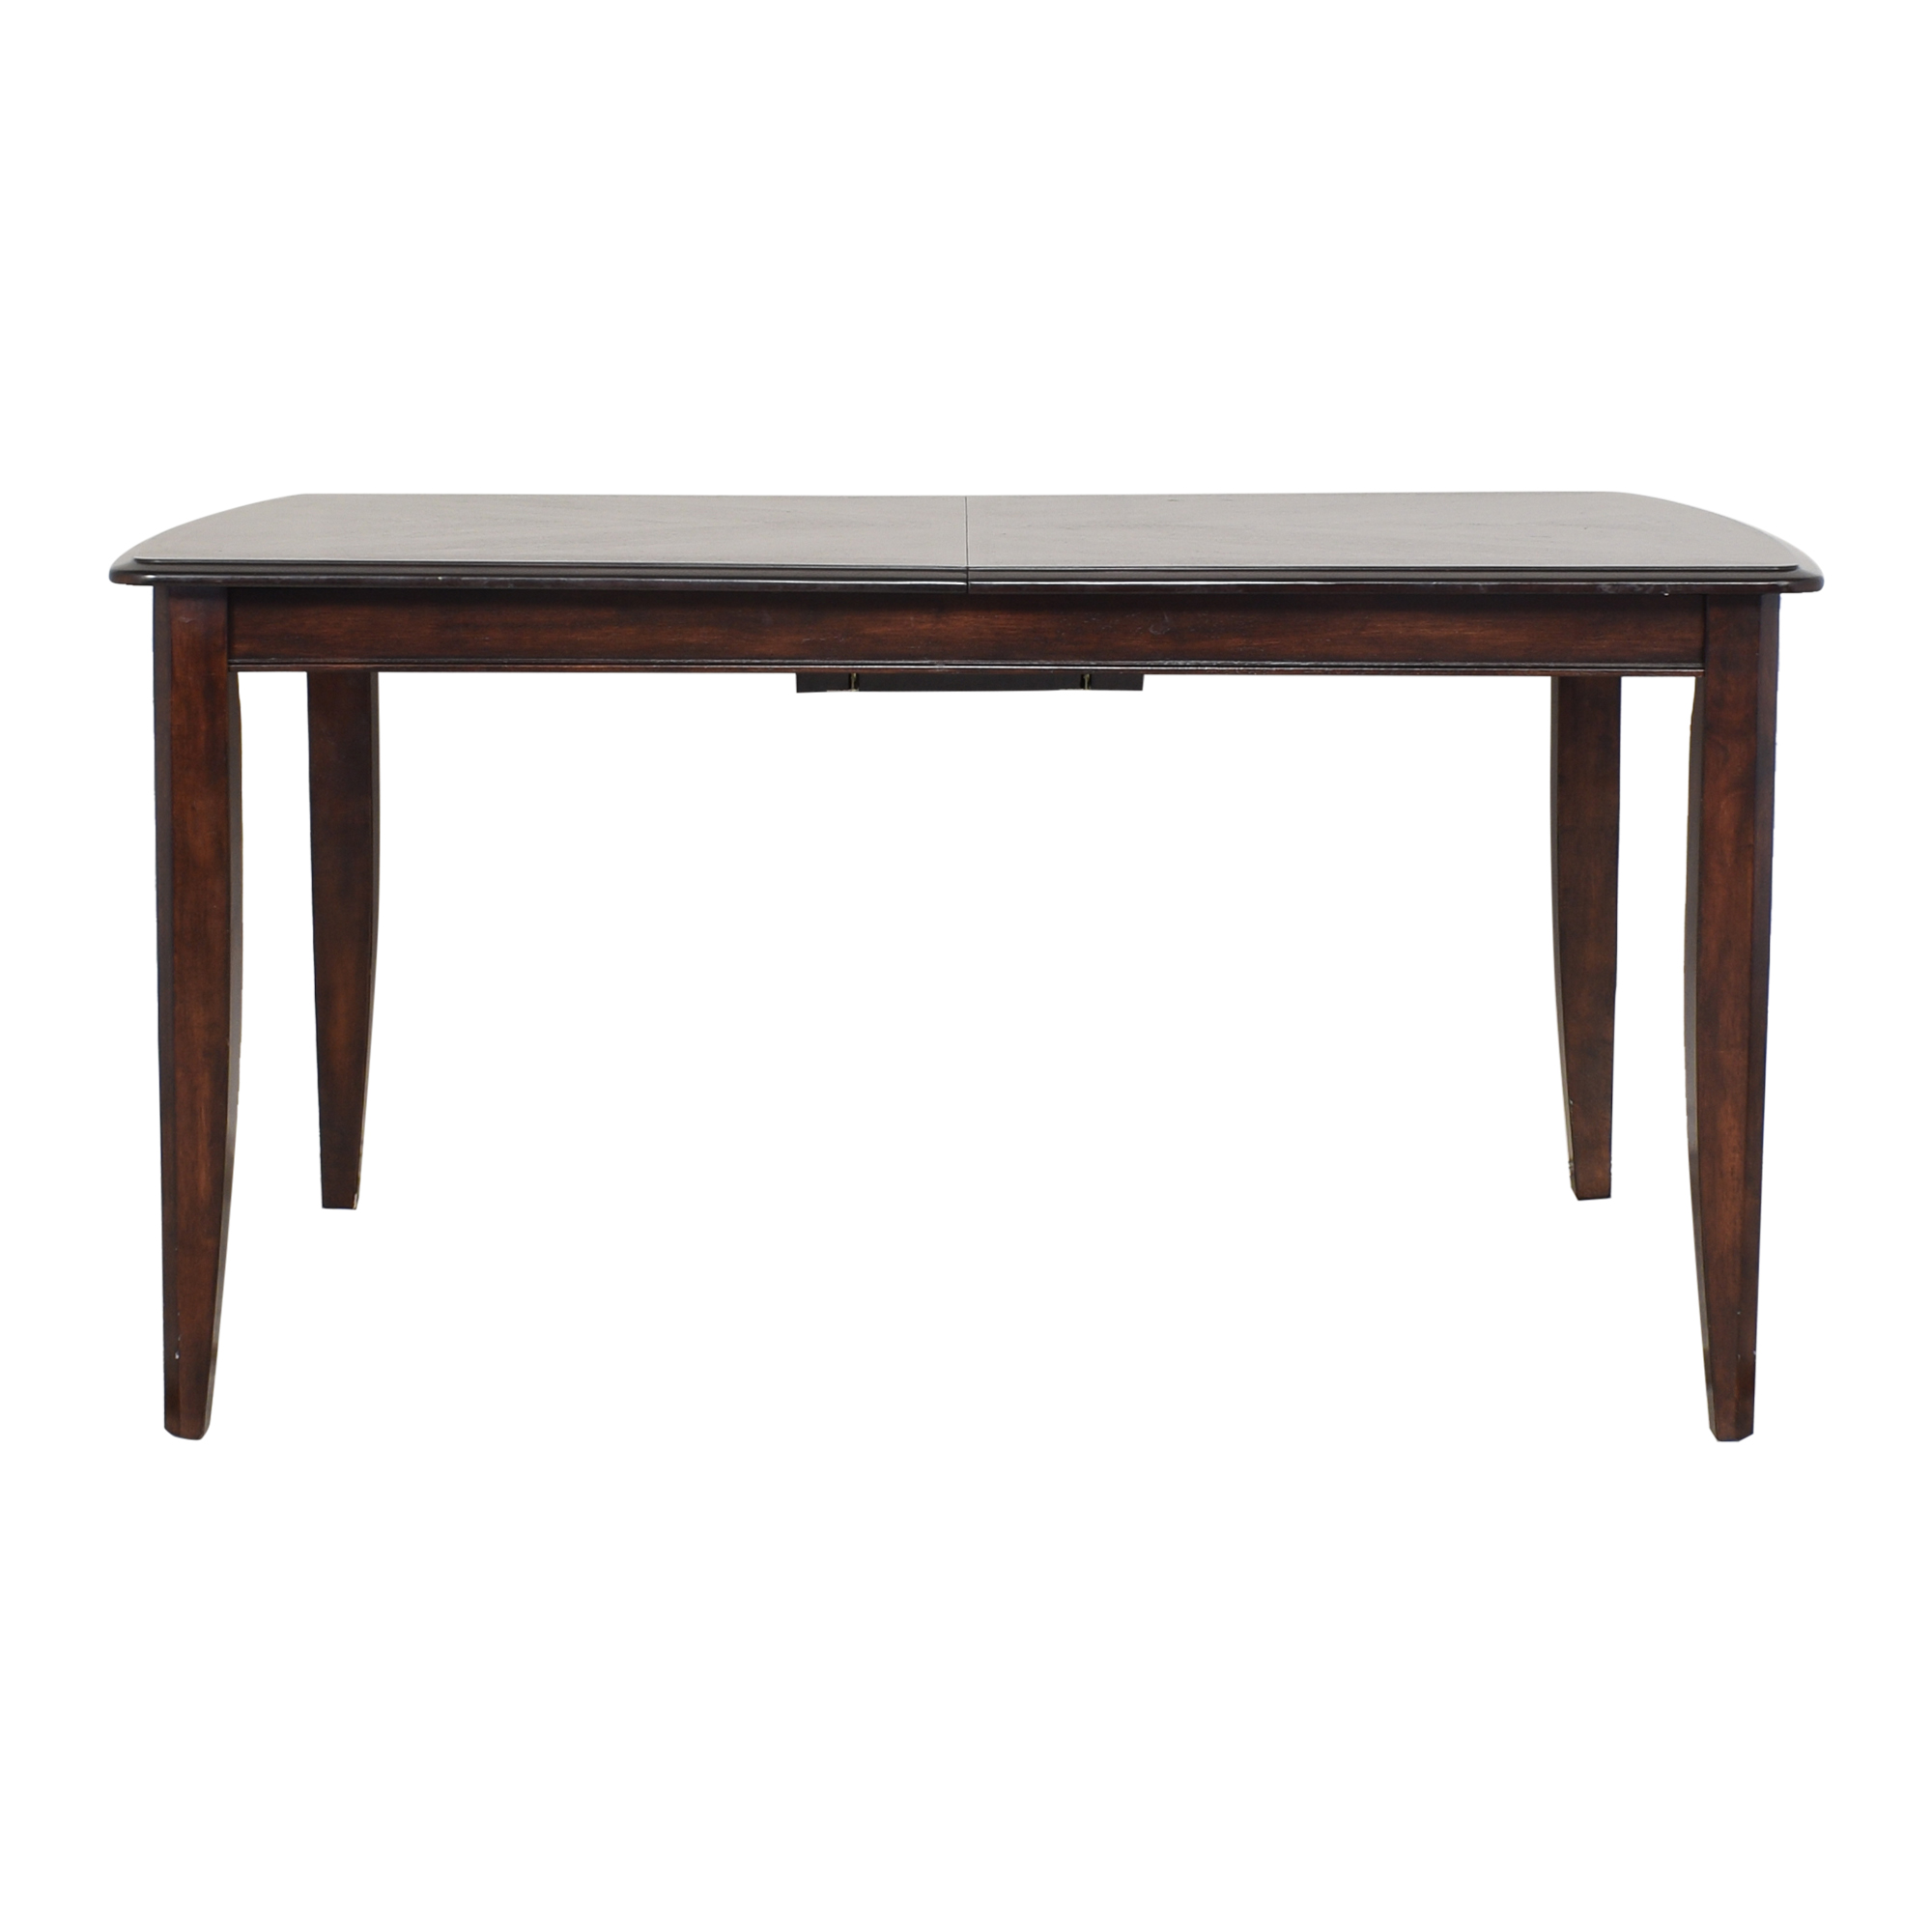 Raymour & Flanigan Raymour & Flanigan Extendable Dining Table dimensions